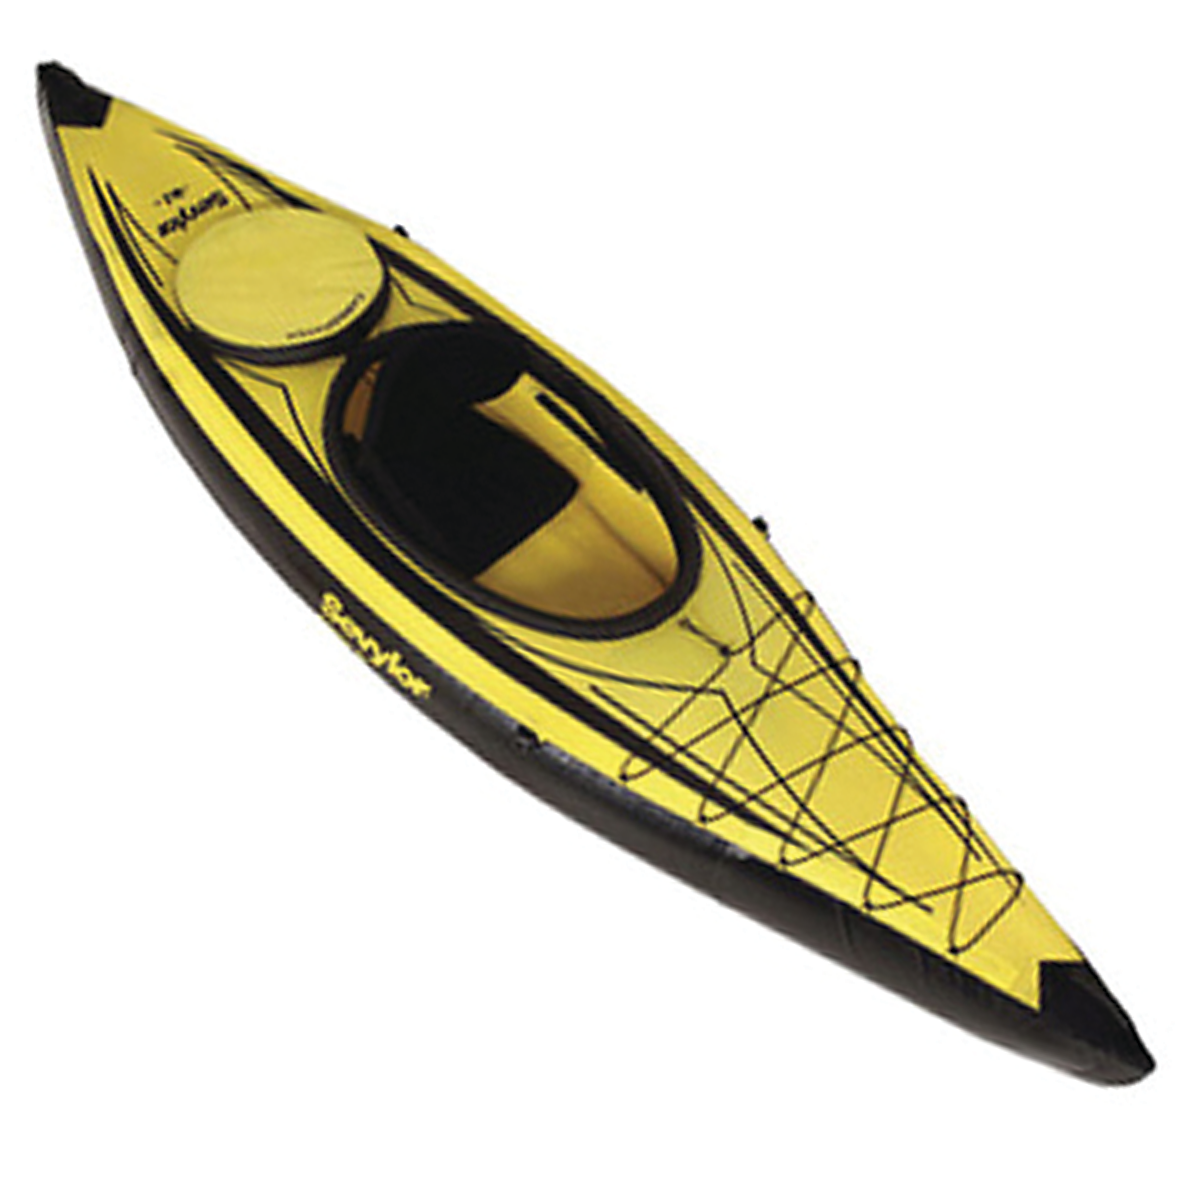 Inflatable Kayaks -AMPAND- Accessories